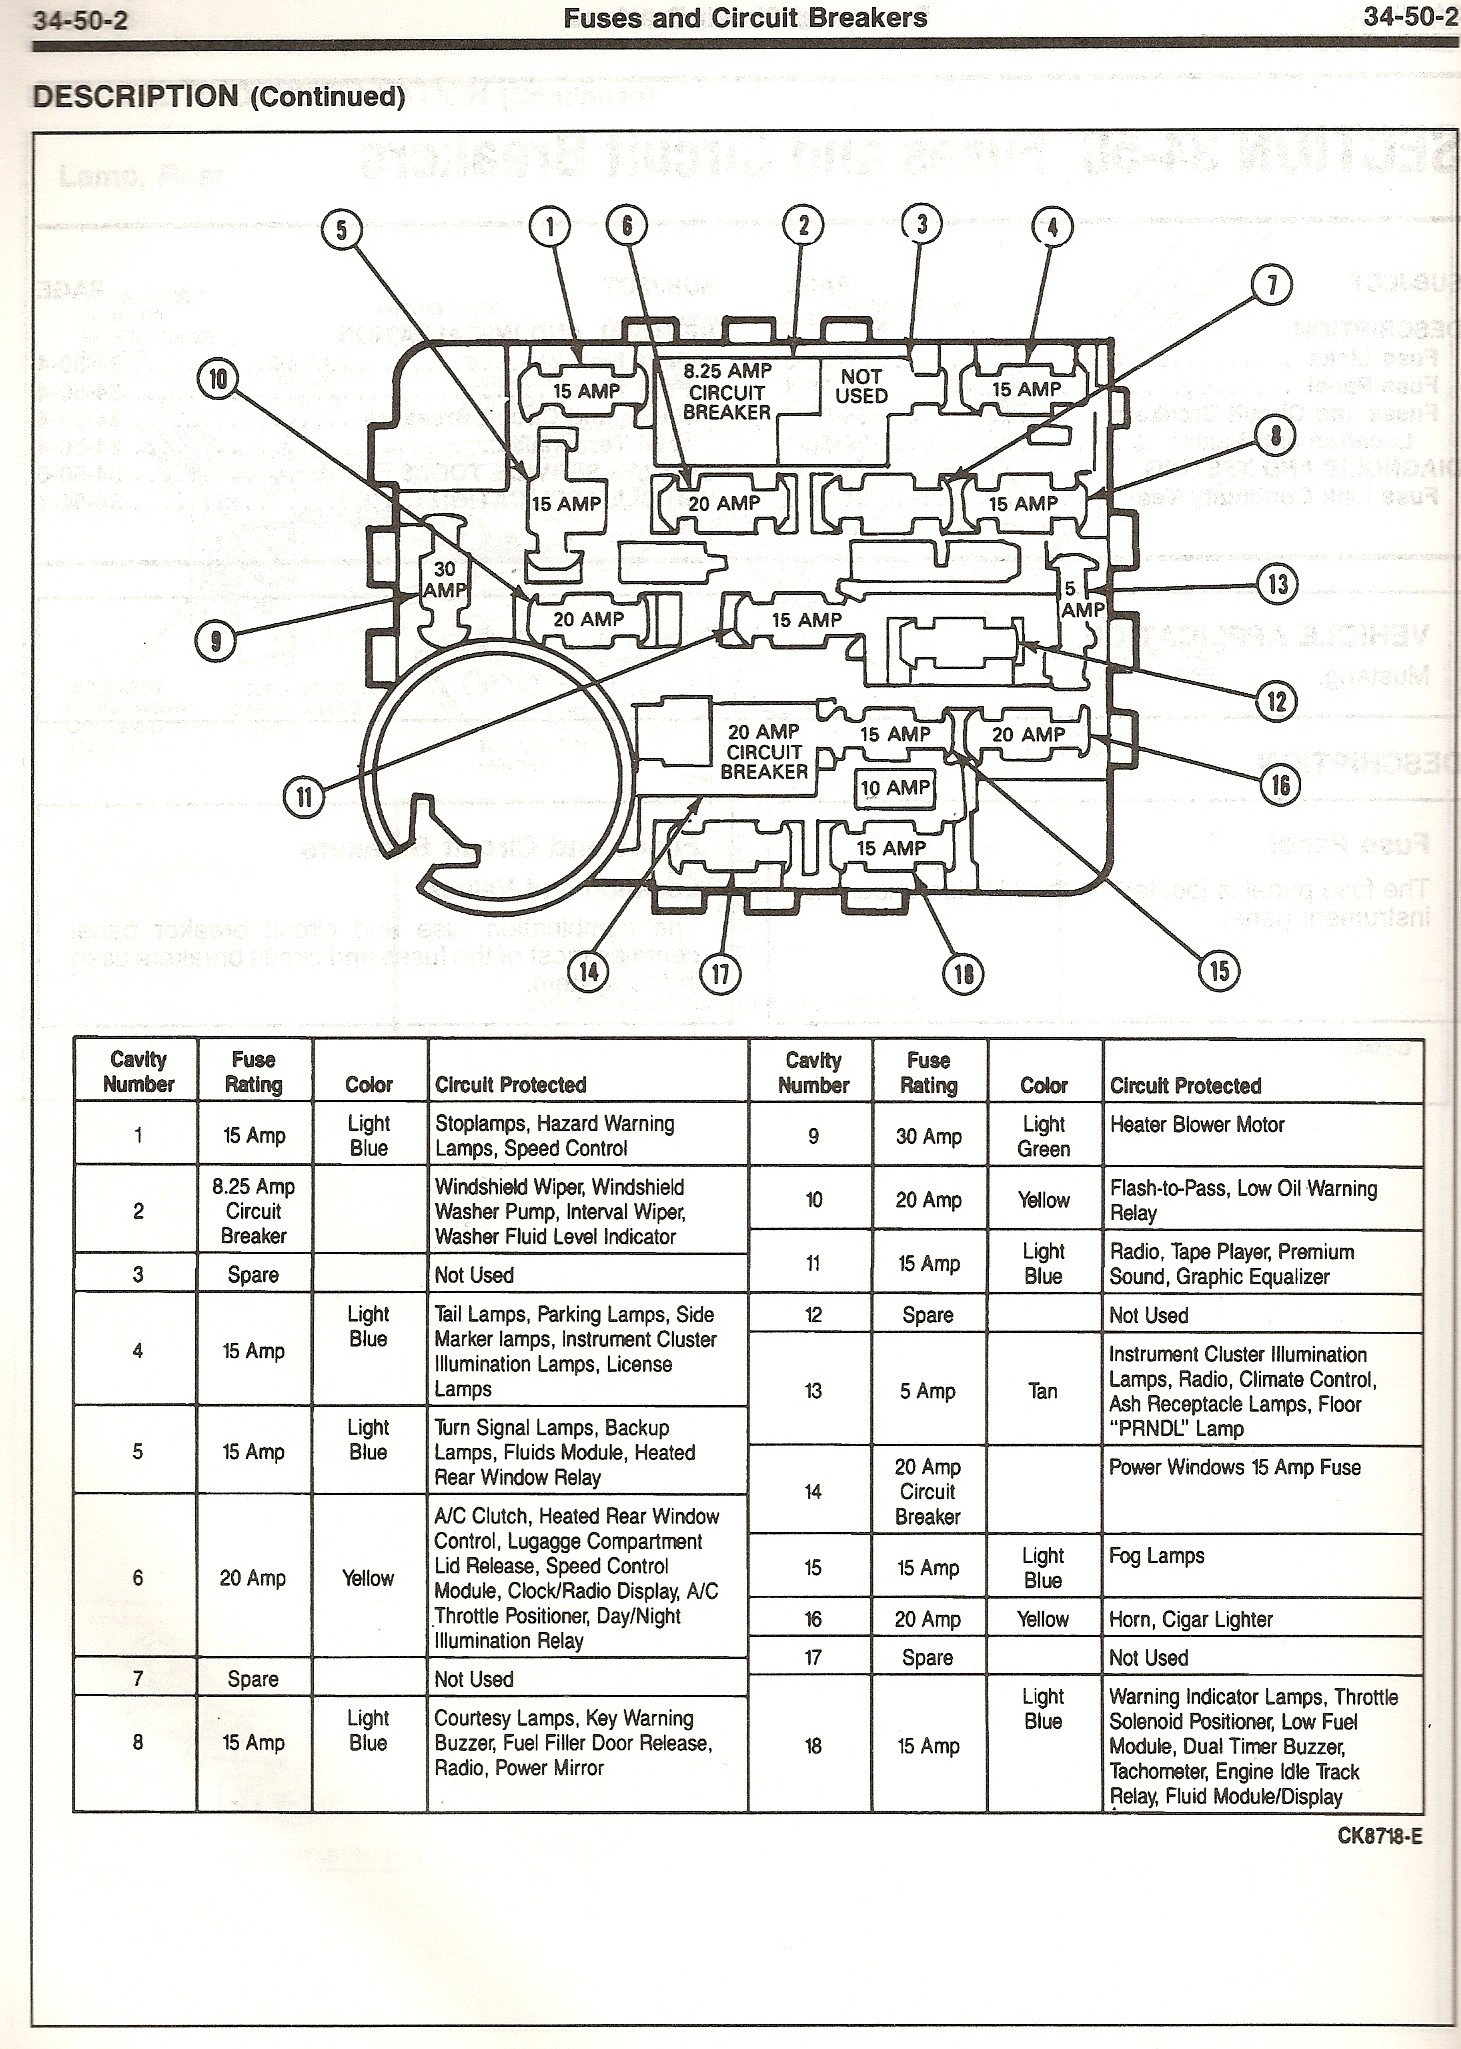 1994 300zx keyless entry wiring diagram